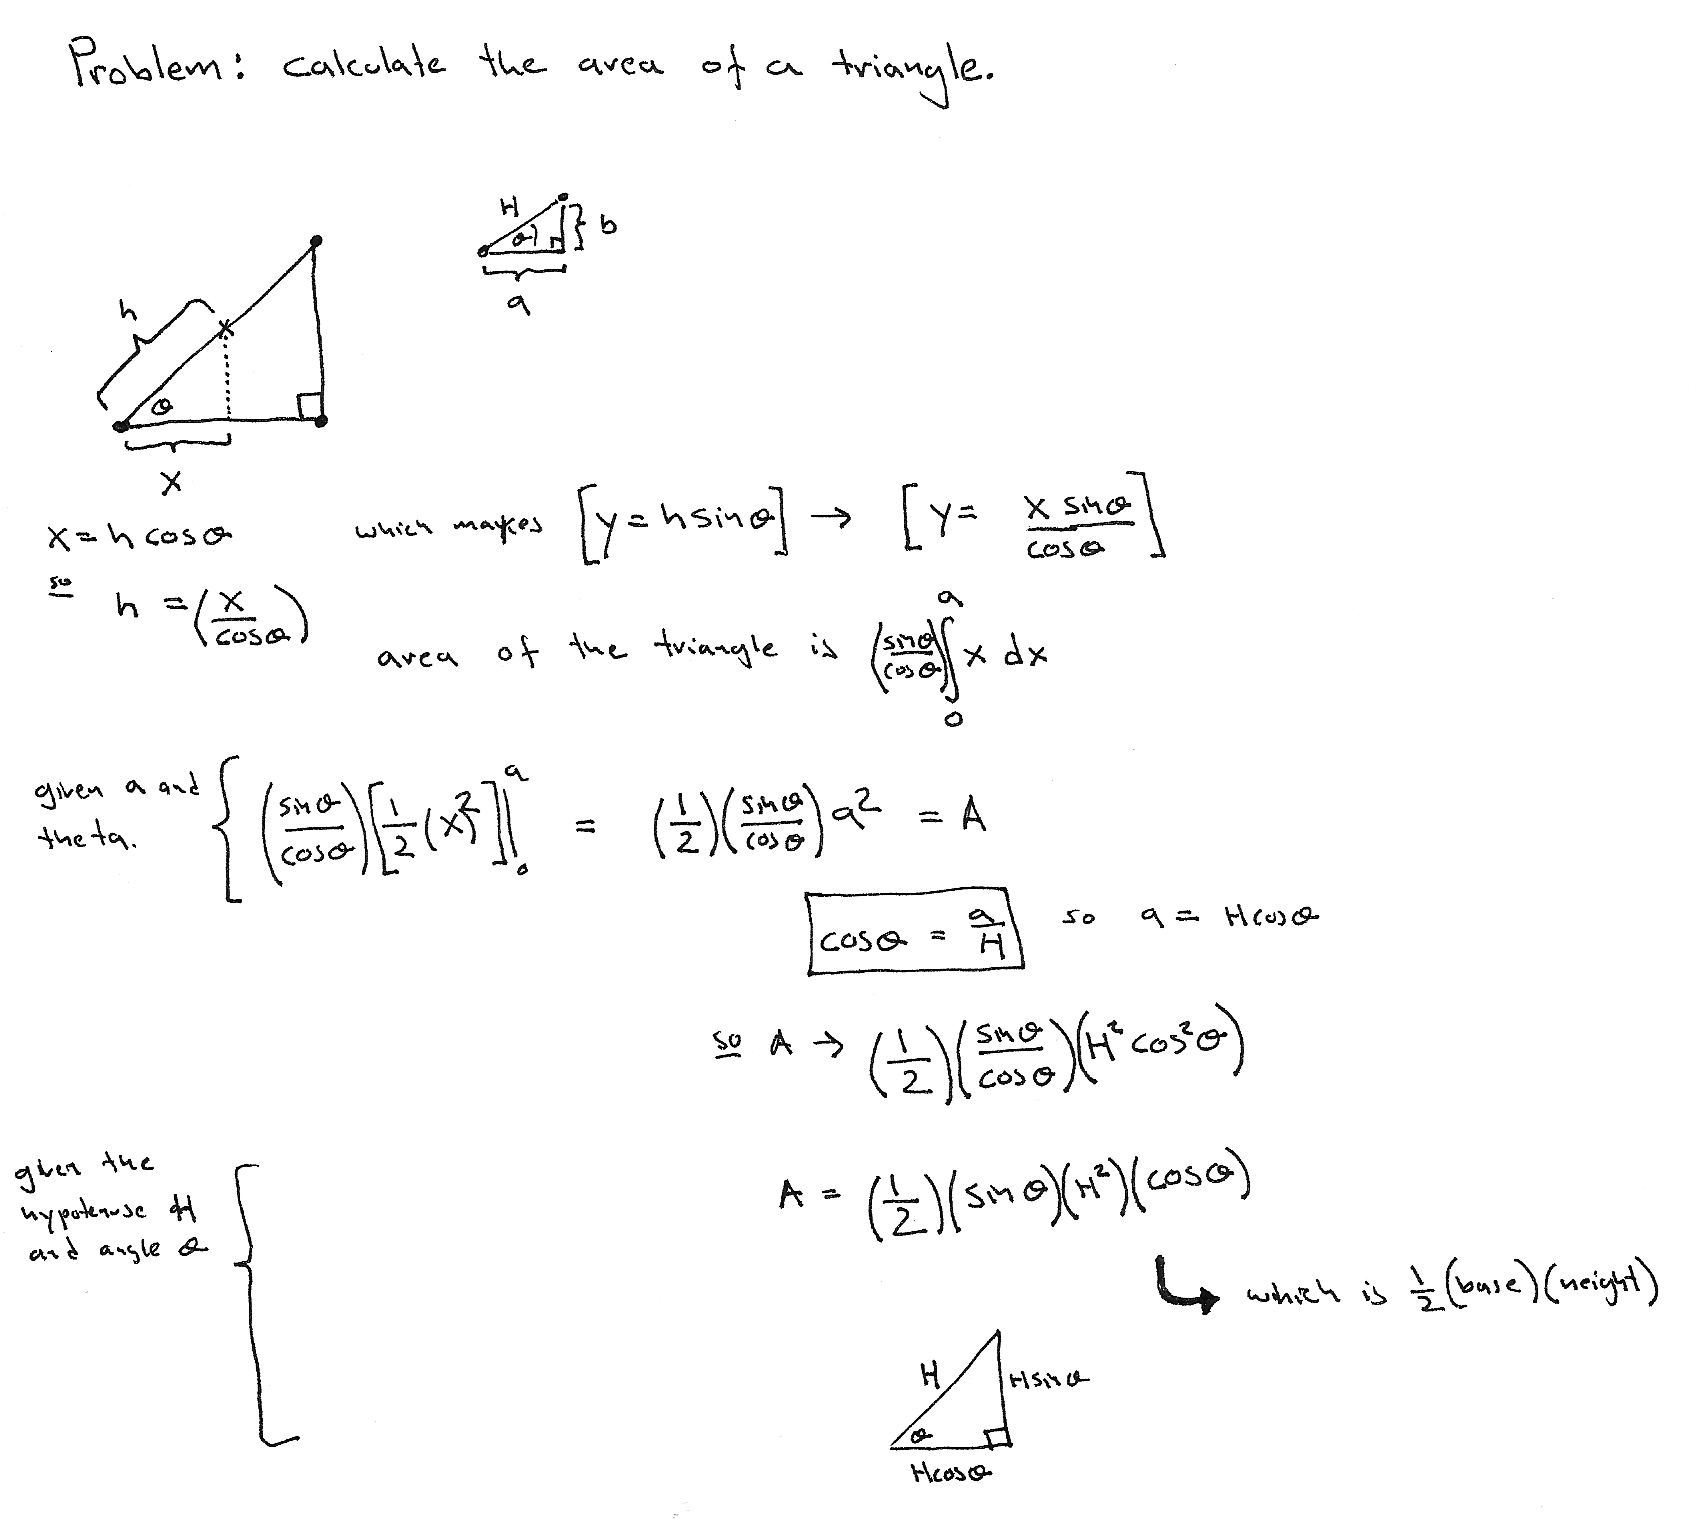 Area of a right triangle via integration